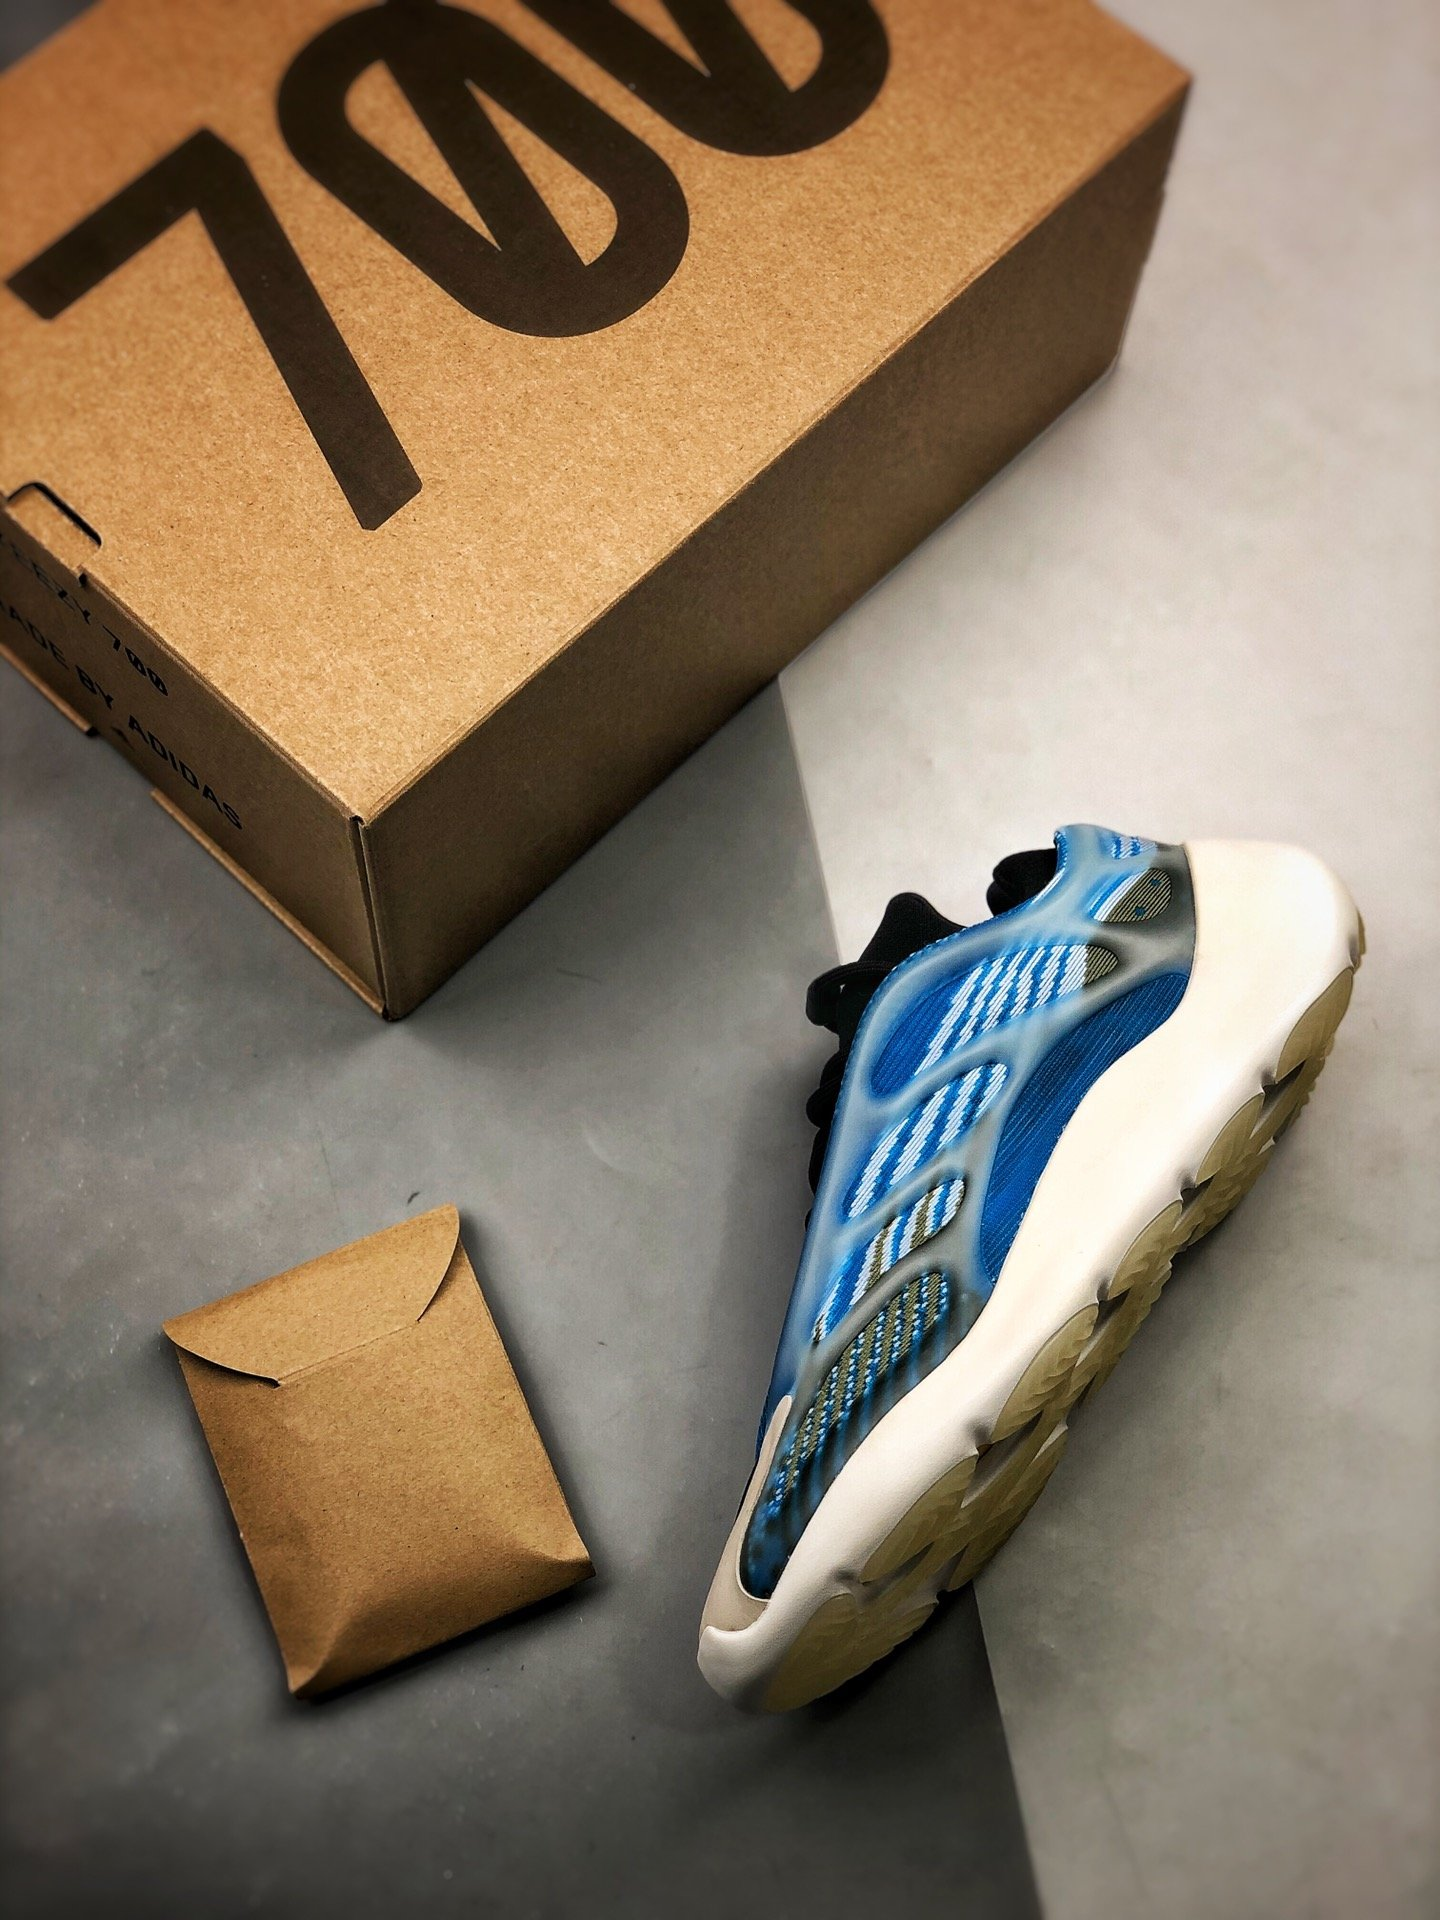 authentic Yeezy 700 v3 box